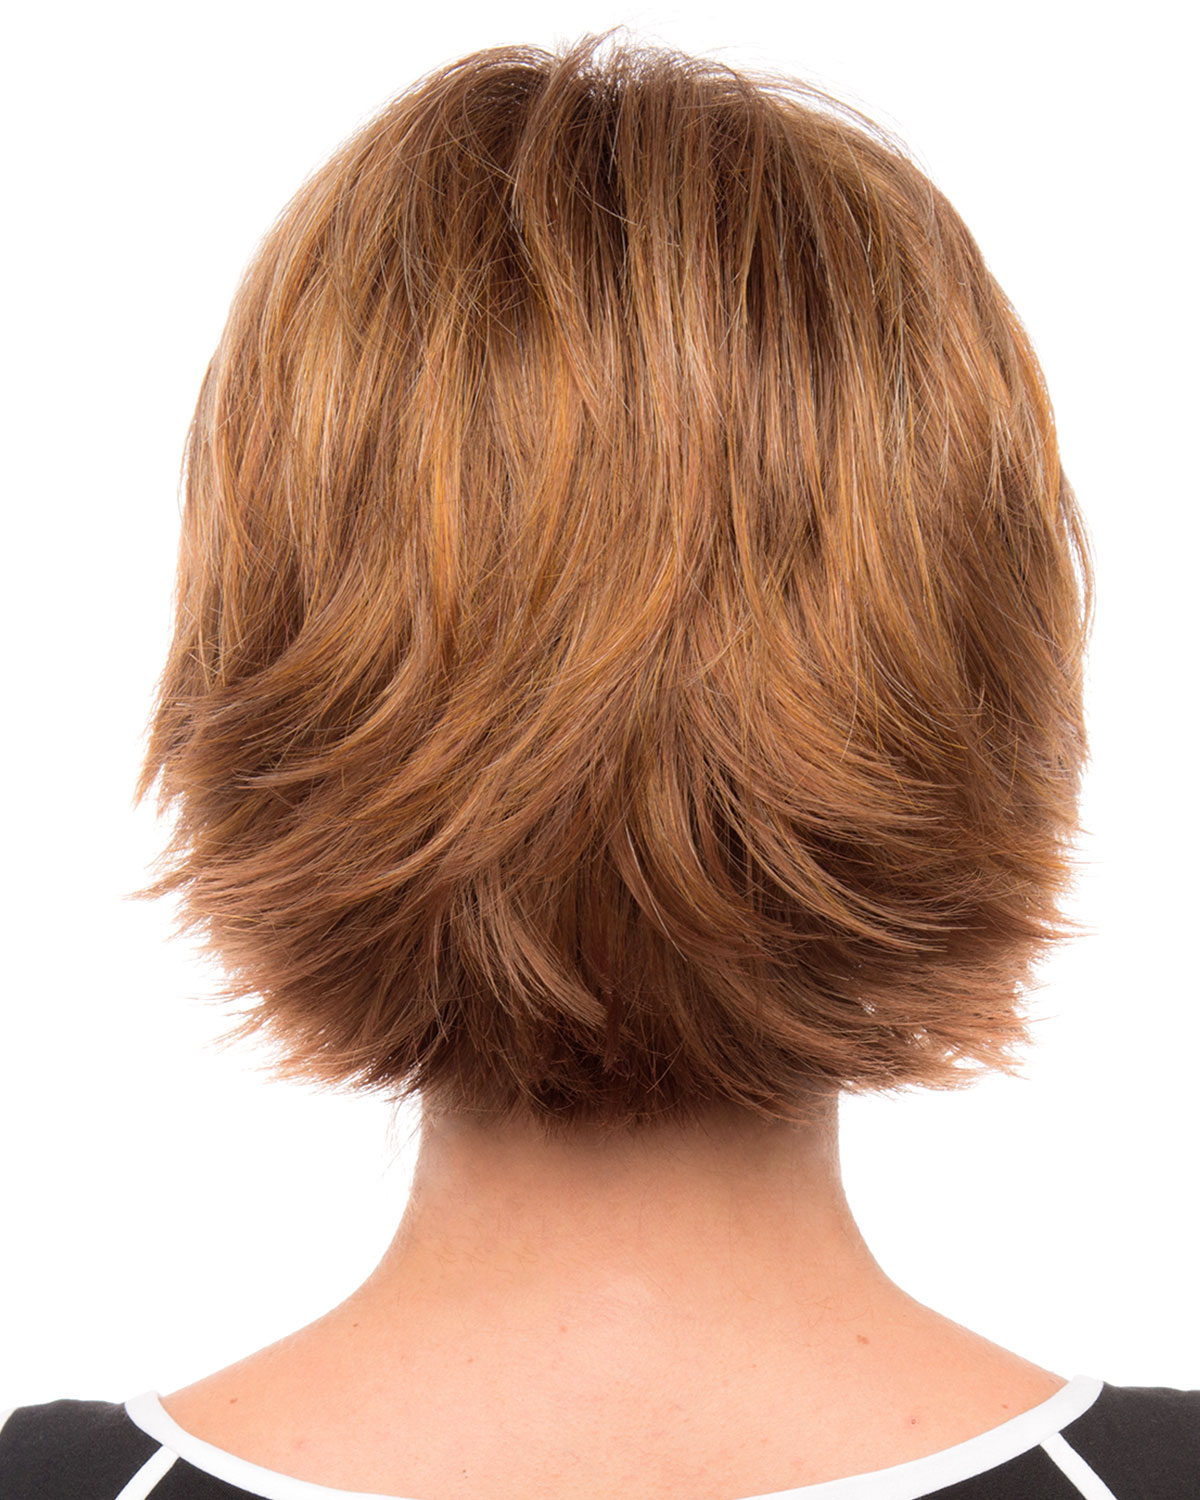 wigs for women best wig reviews